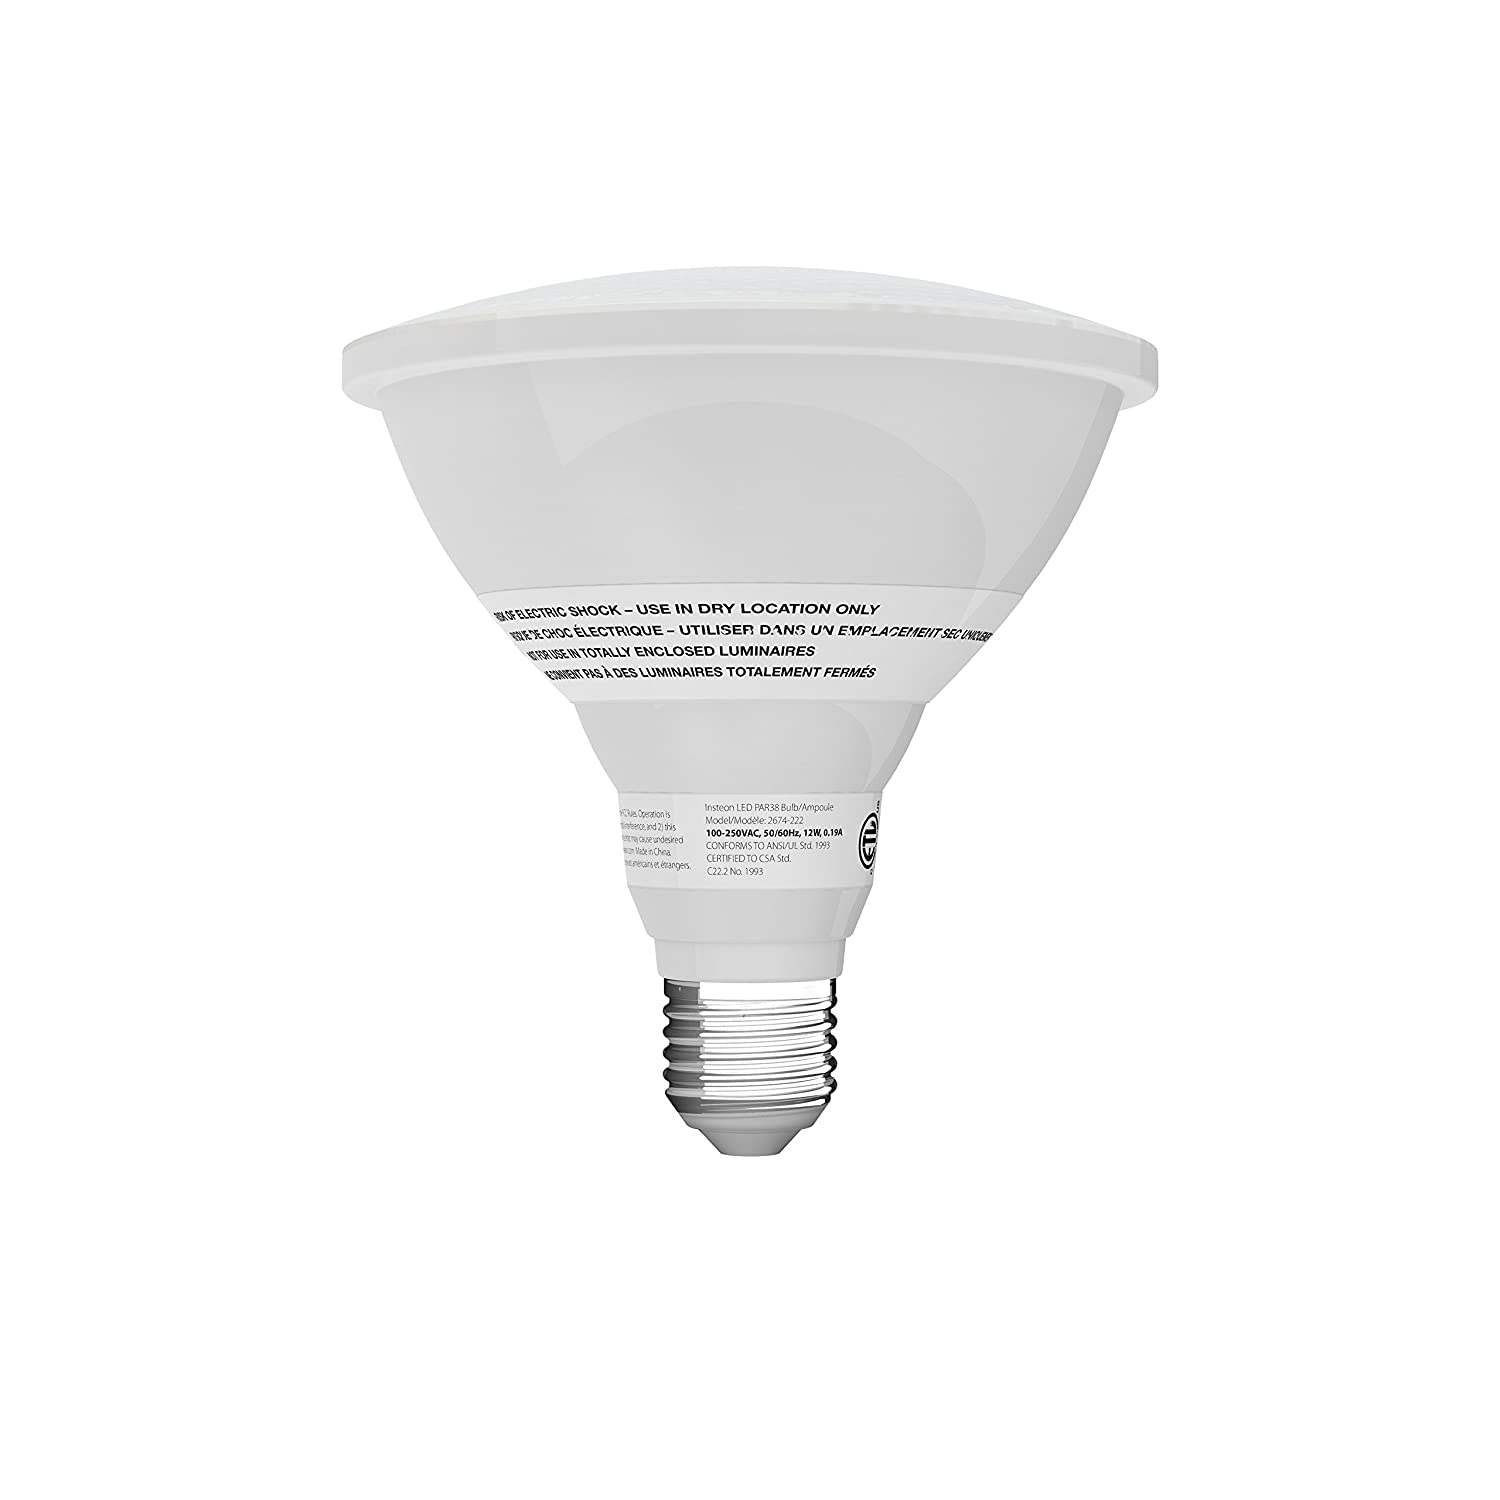 Insteon Smart Dimmable LED Light Bulb (A19) Works with Alexa via Insteon Bridge 8W (60W equivalent) Warm White Uses Superior Dual-Mesh Wireless ...  sc 1 st  Amazon.com & Insteon Smart Dimmable LED Light Bulb (A19) Works with Alexa via ... azcodes.com